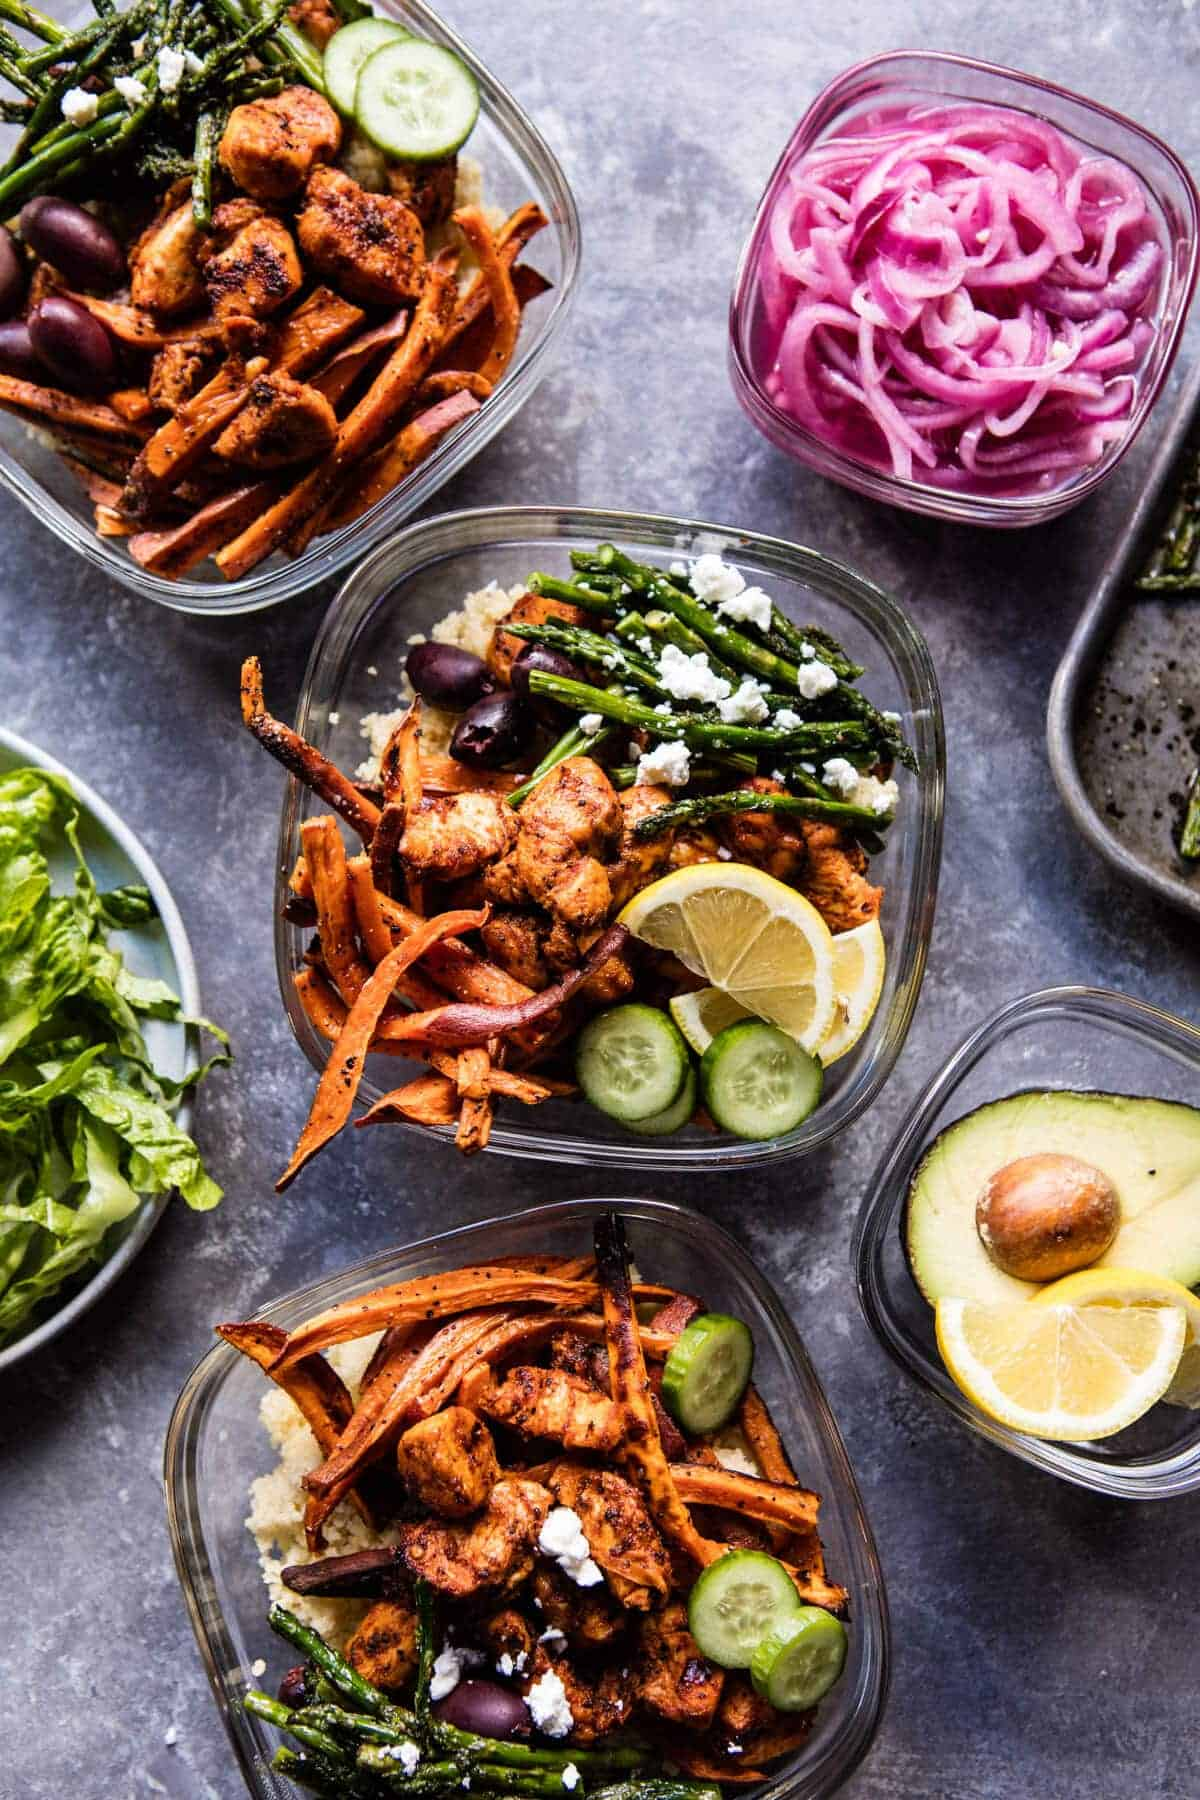 Meal Prep: Chicken Shawarma and Sweet Potato Fry Bowls | halfbakedharvest.com @hbharvest